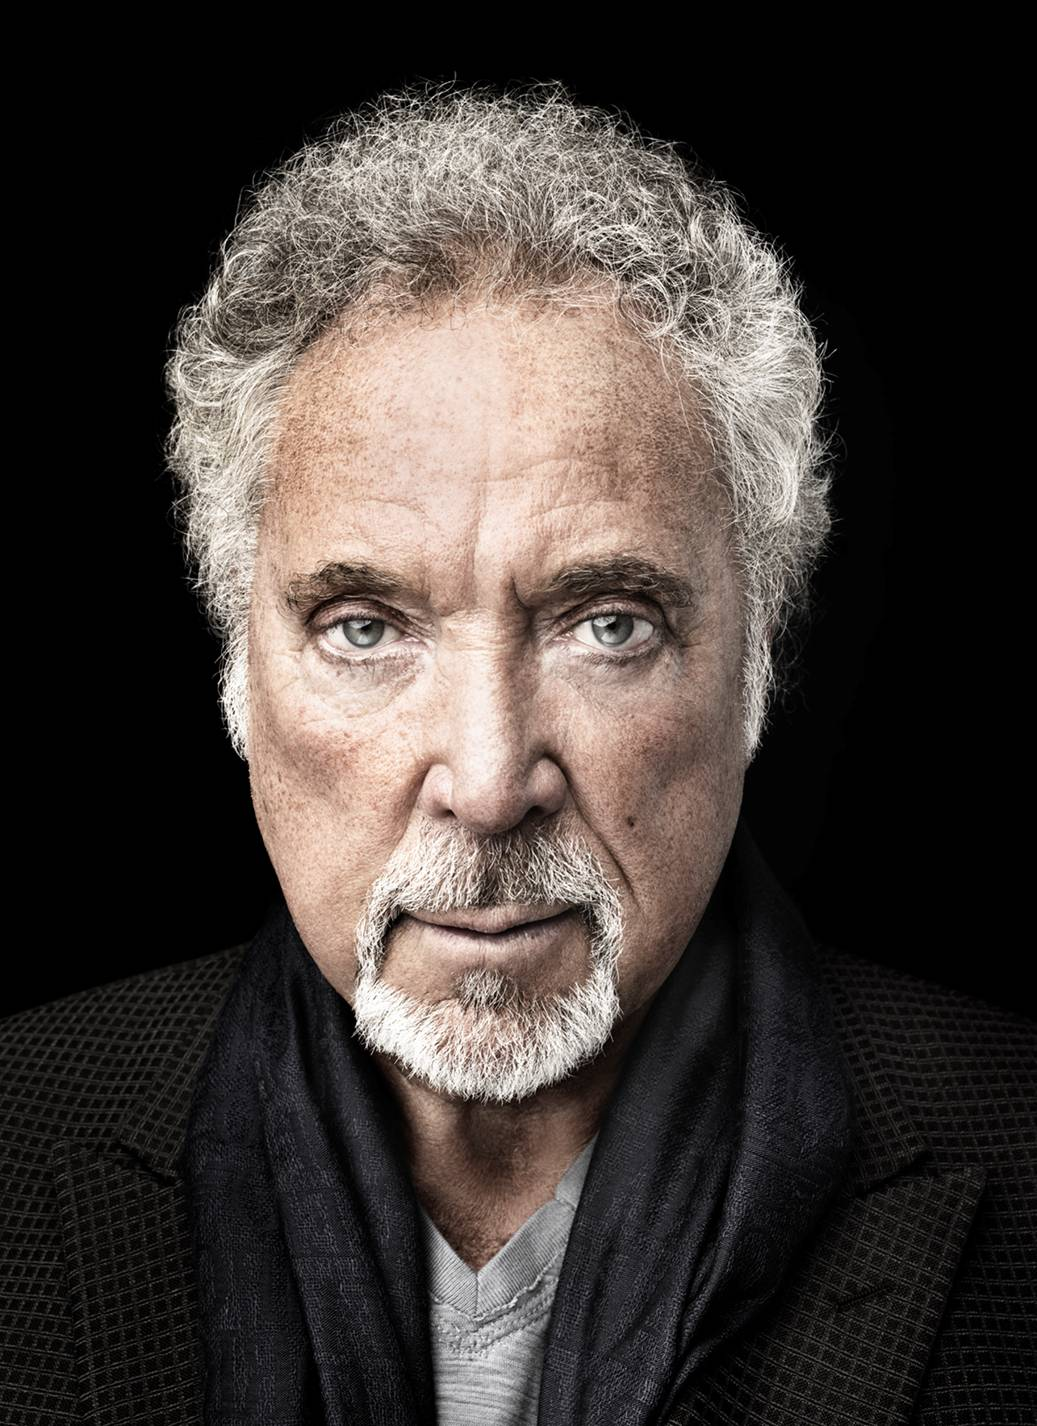 tom jones Tom jones, a man who oozed charisma thanks to his powerhouse voice and slick stage moves, hosted his own weekly musical variety show from 1969 to 1971 this 3 dvd set.